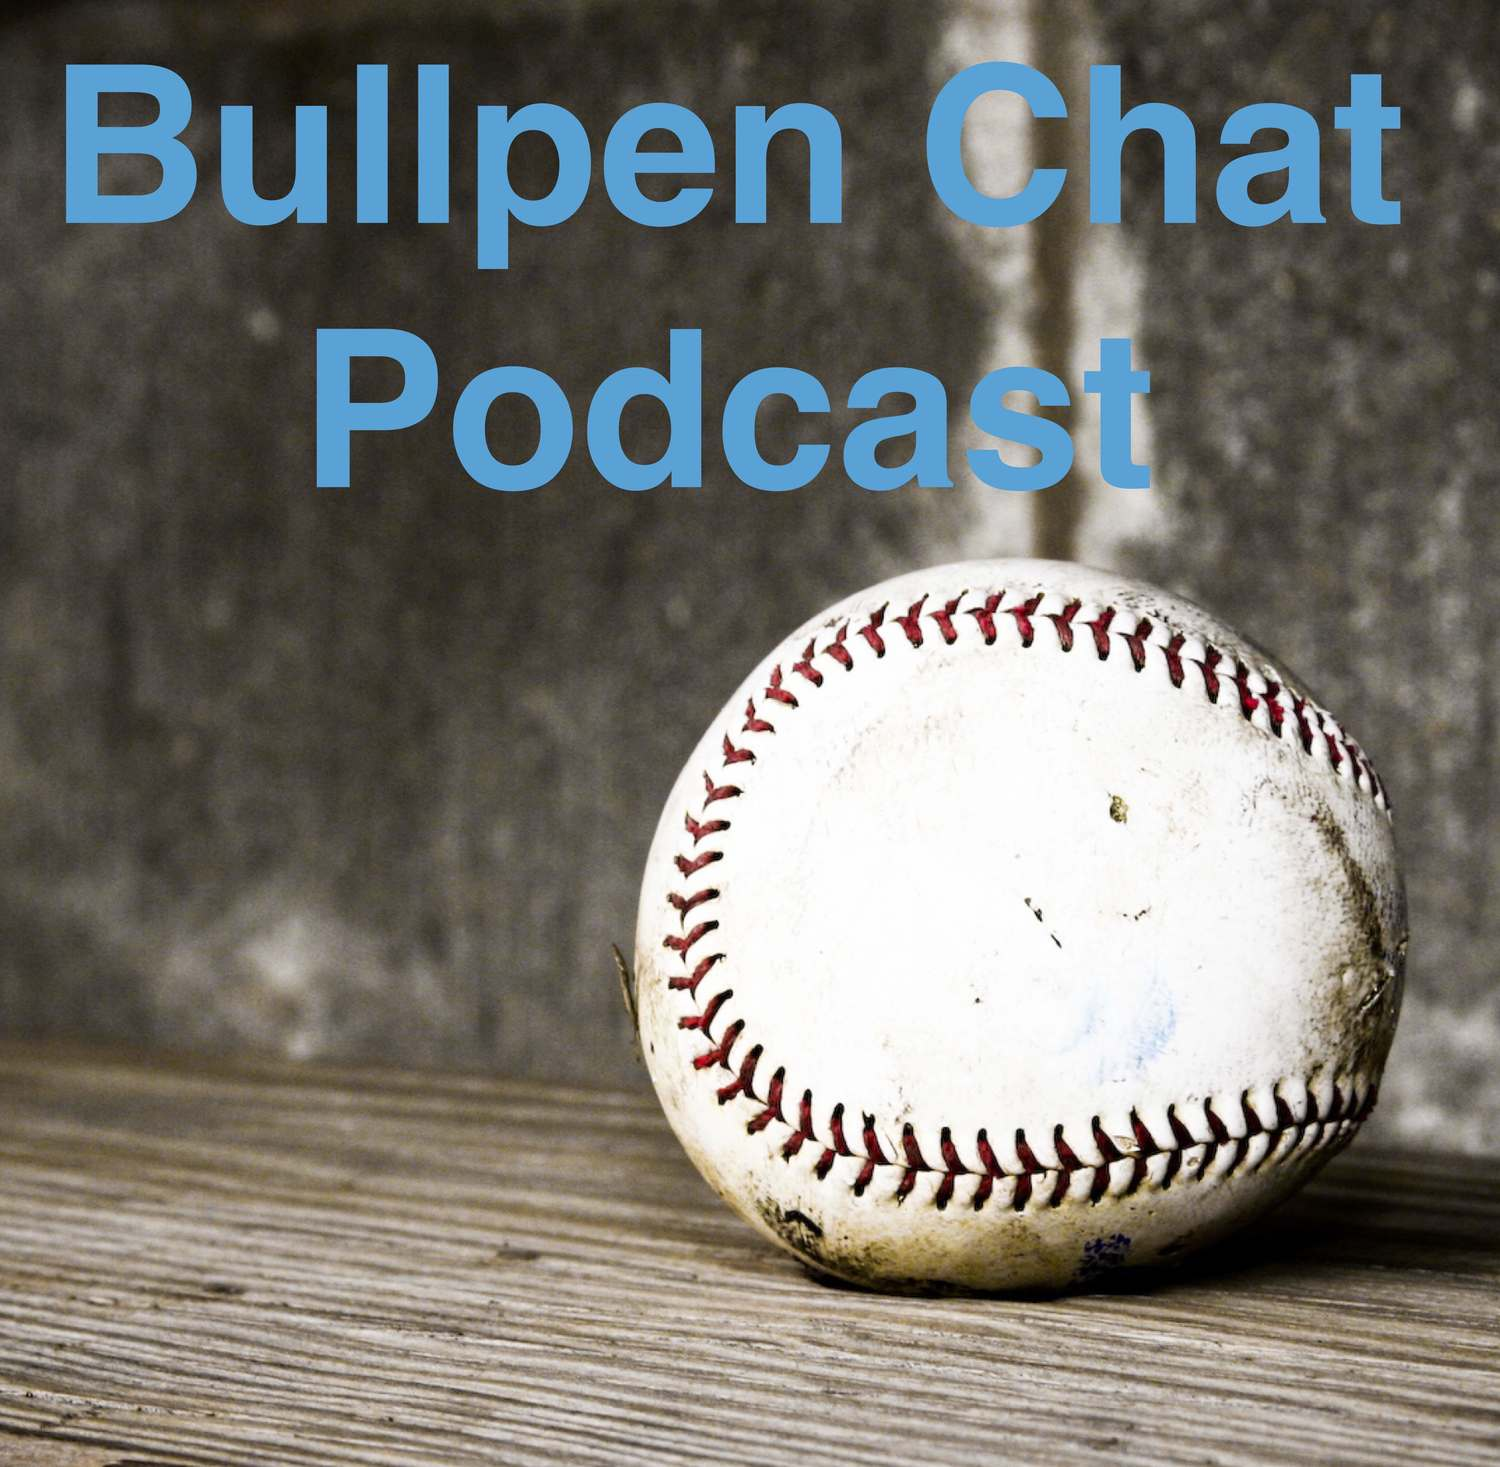 Bullpen Chat Podcast - Chris Goddu